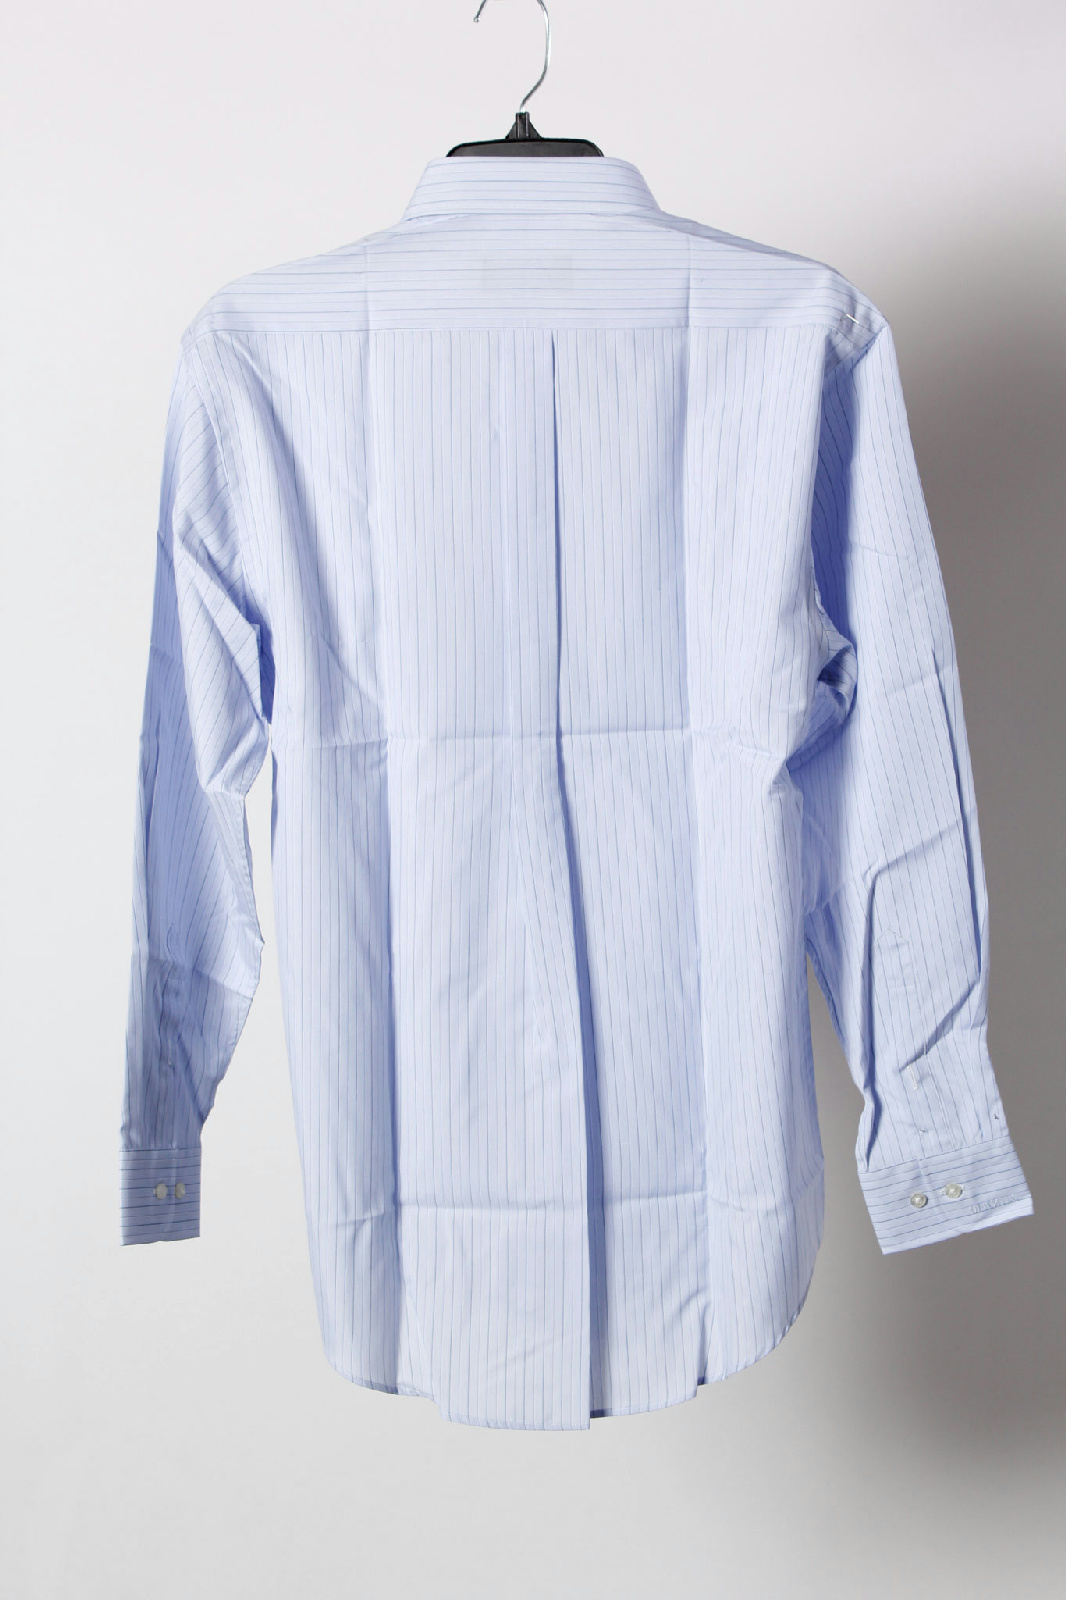 Alfred Dunhill Cotton Blue Long Sleeve Men 39 S Casual Button